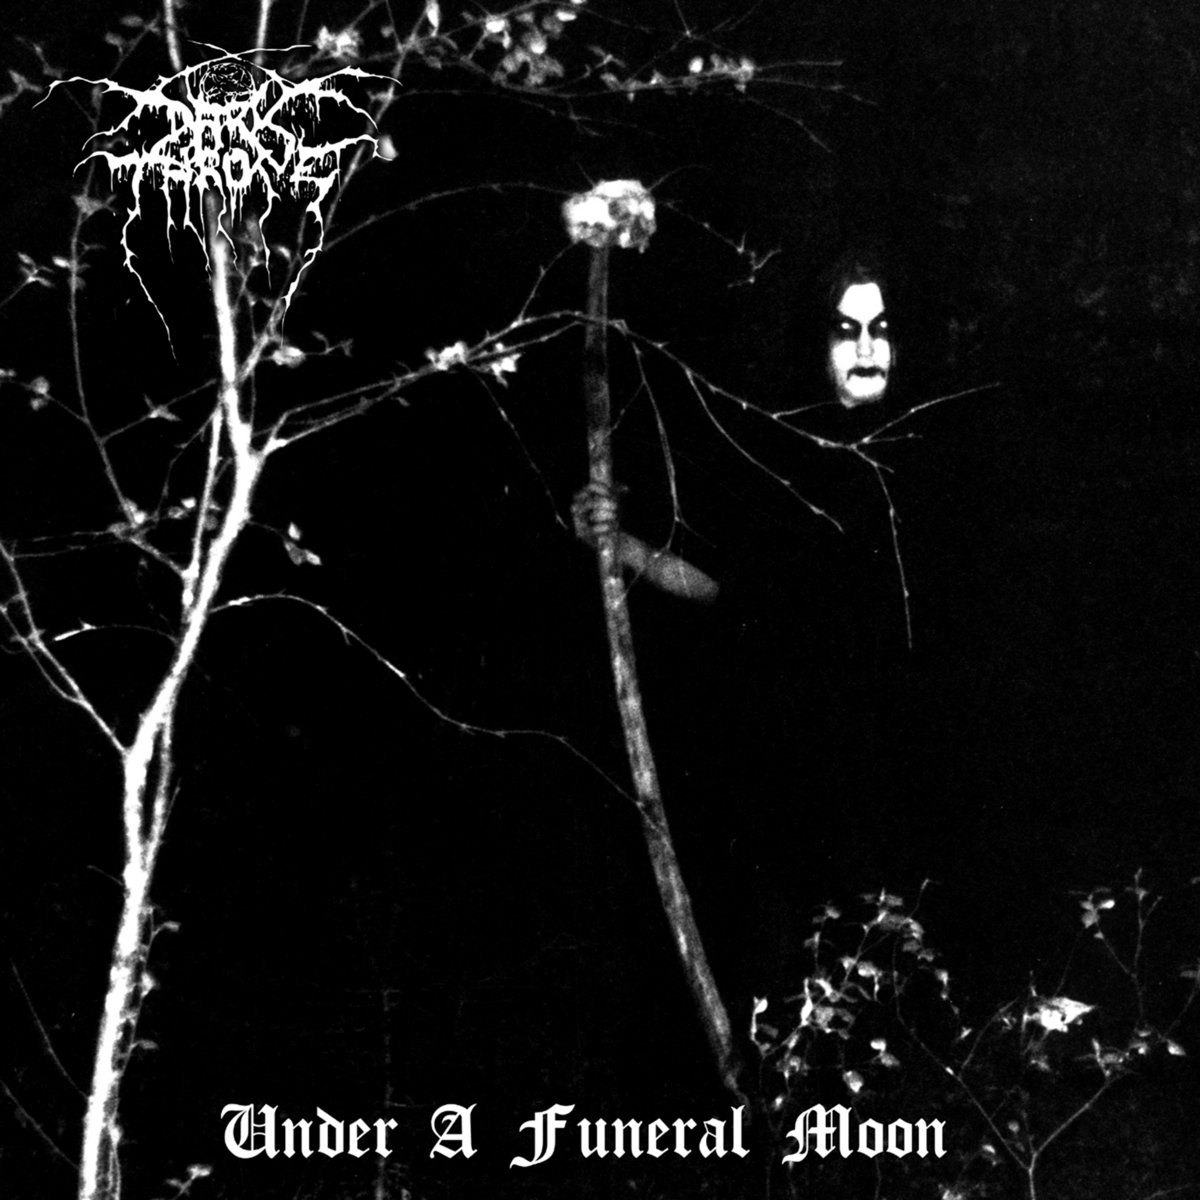 """Darkthrone released their third full-length album, titled """"Under a Funeral Moon"""", their last to feature Zephyrous on guitar before he left the band."""